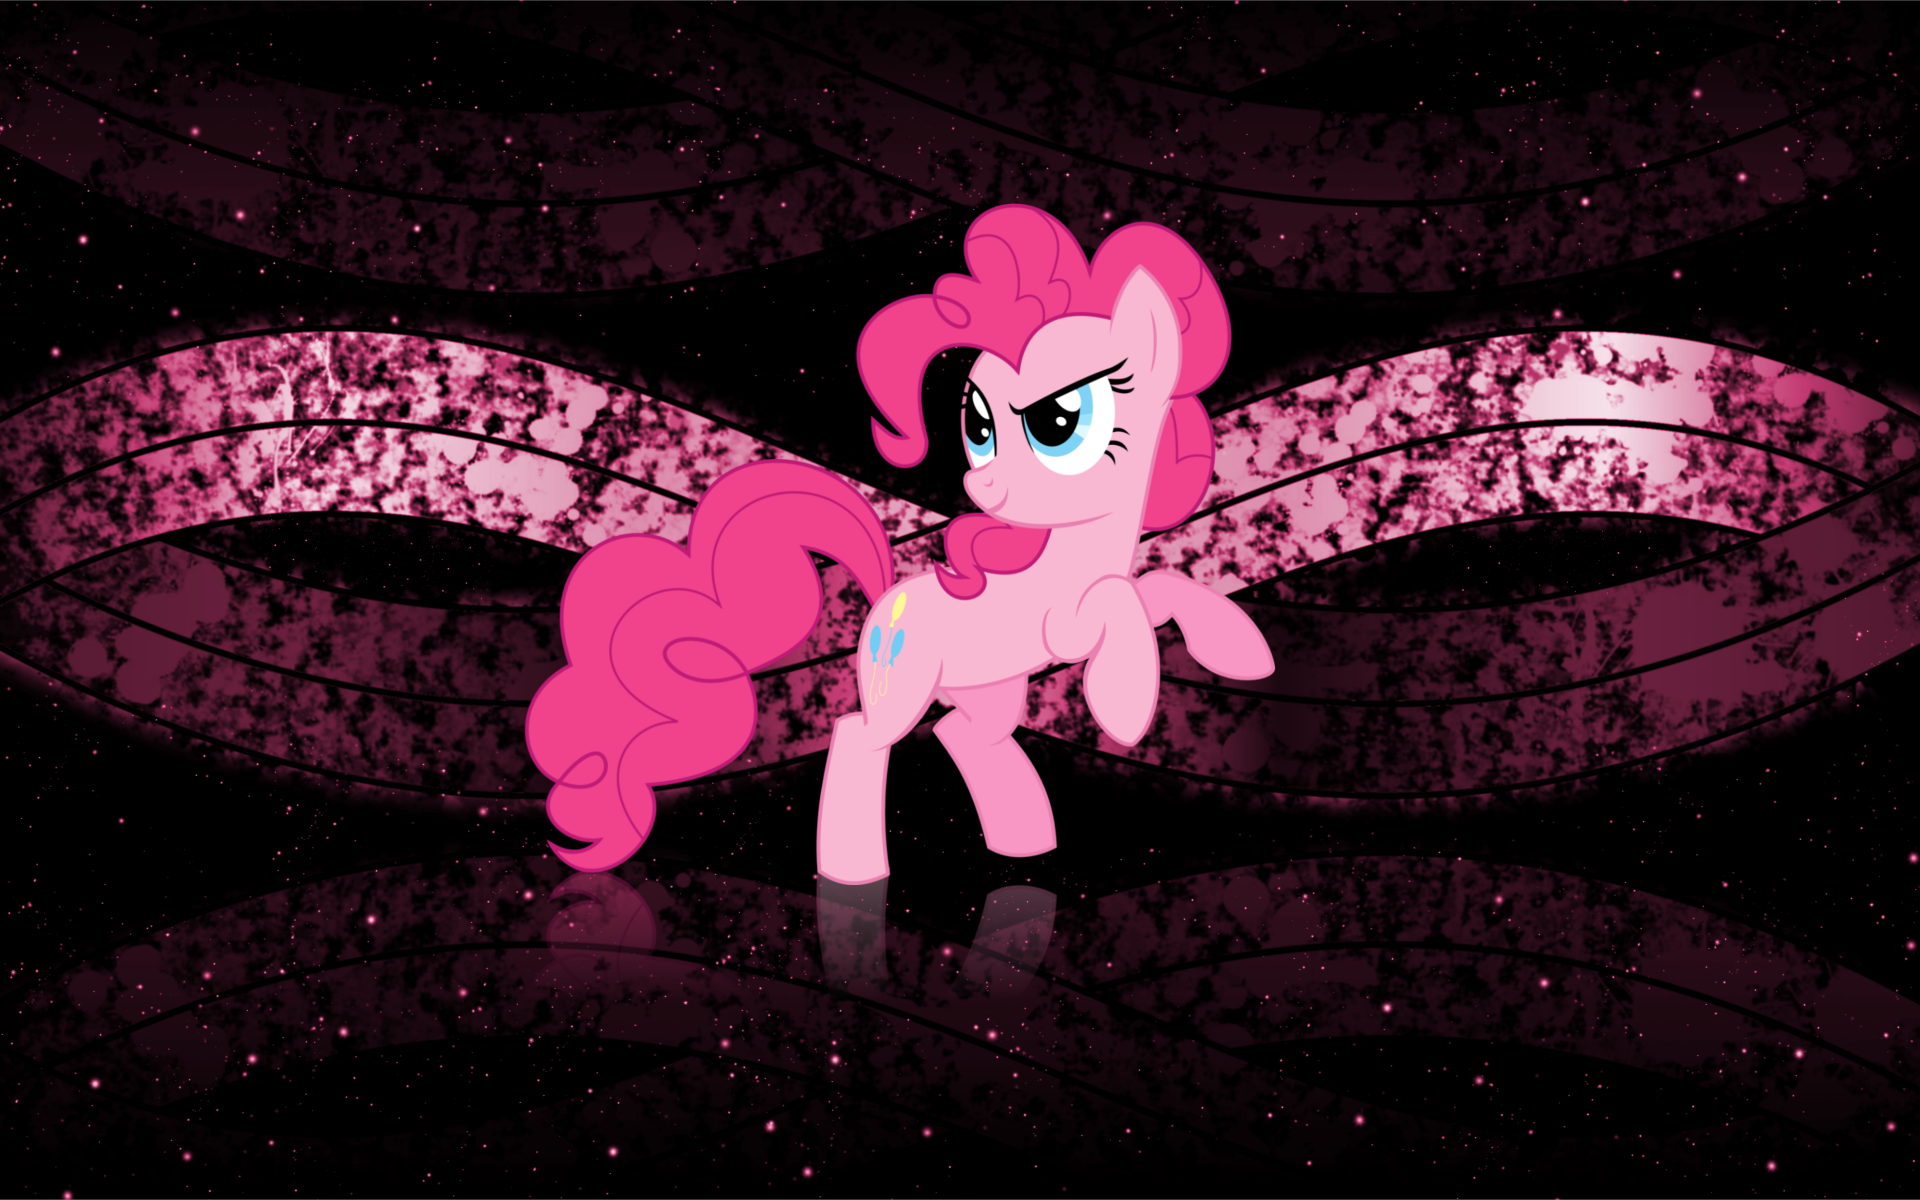 Pinkie Pie Wallpaper 2 by DemoMare